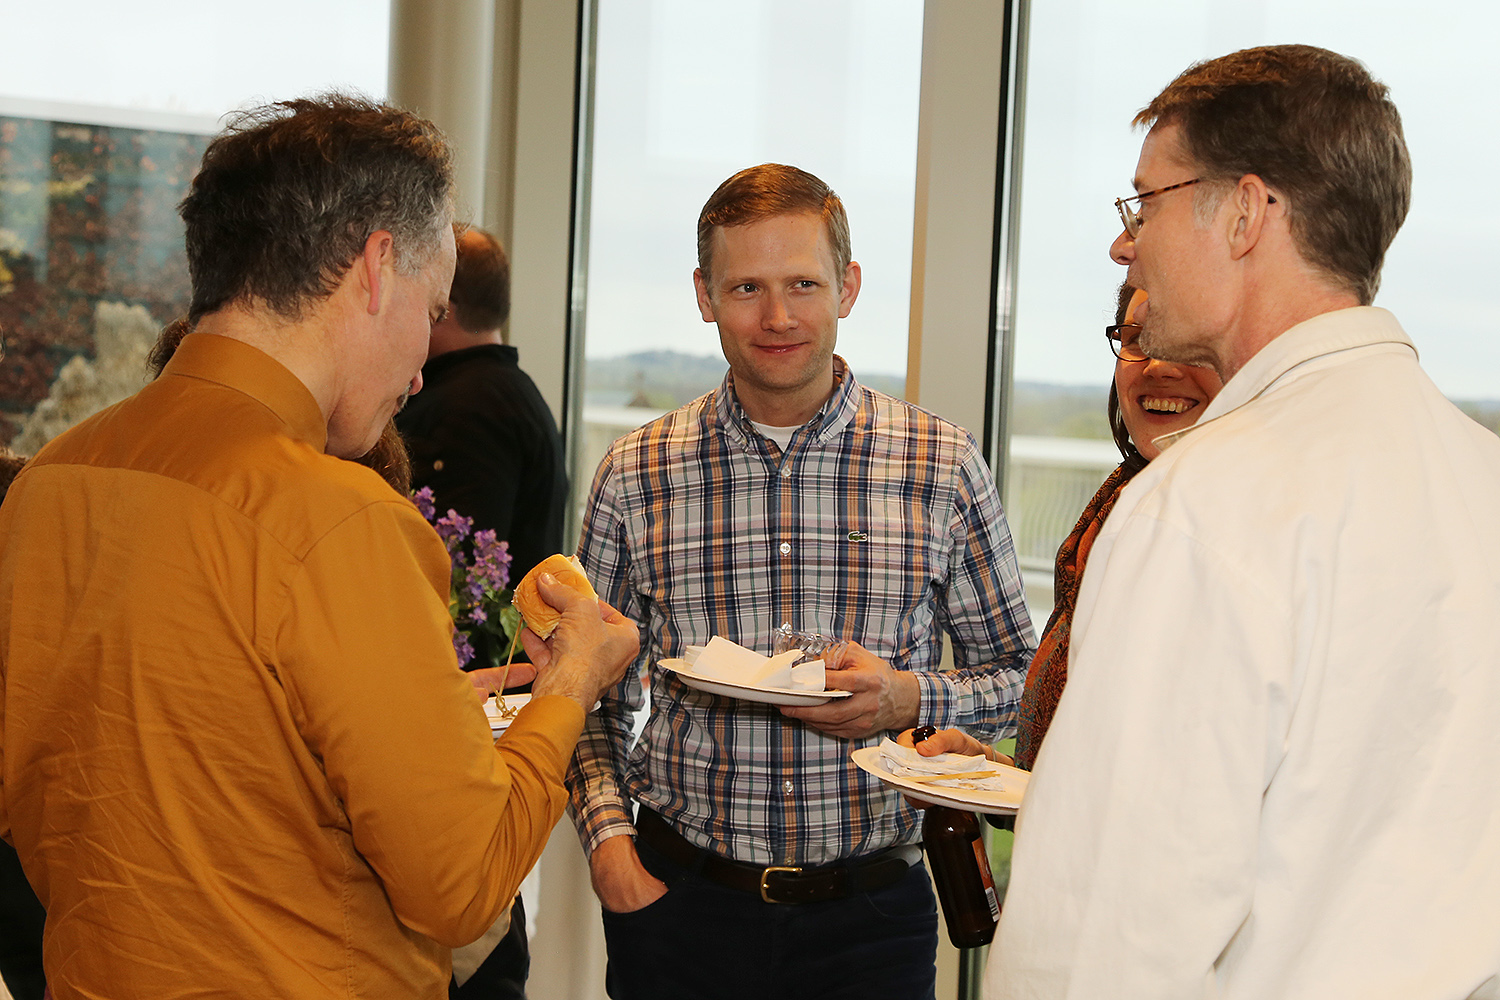 Attendees continued their conversation at a reception following the event. (Photos by Richard Marinelli)